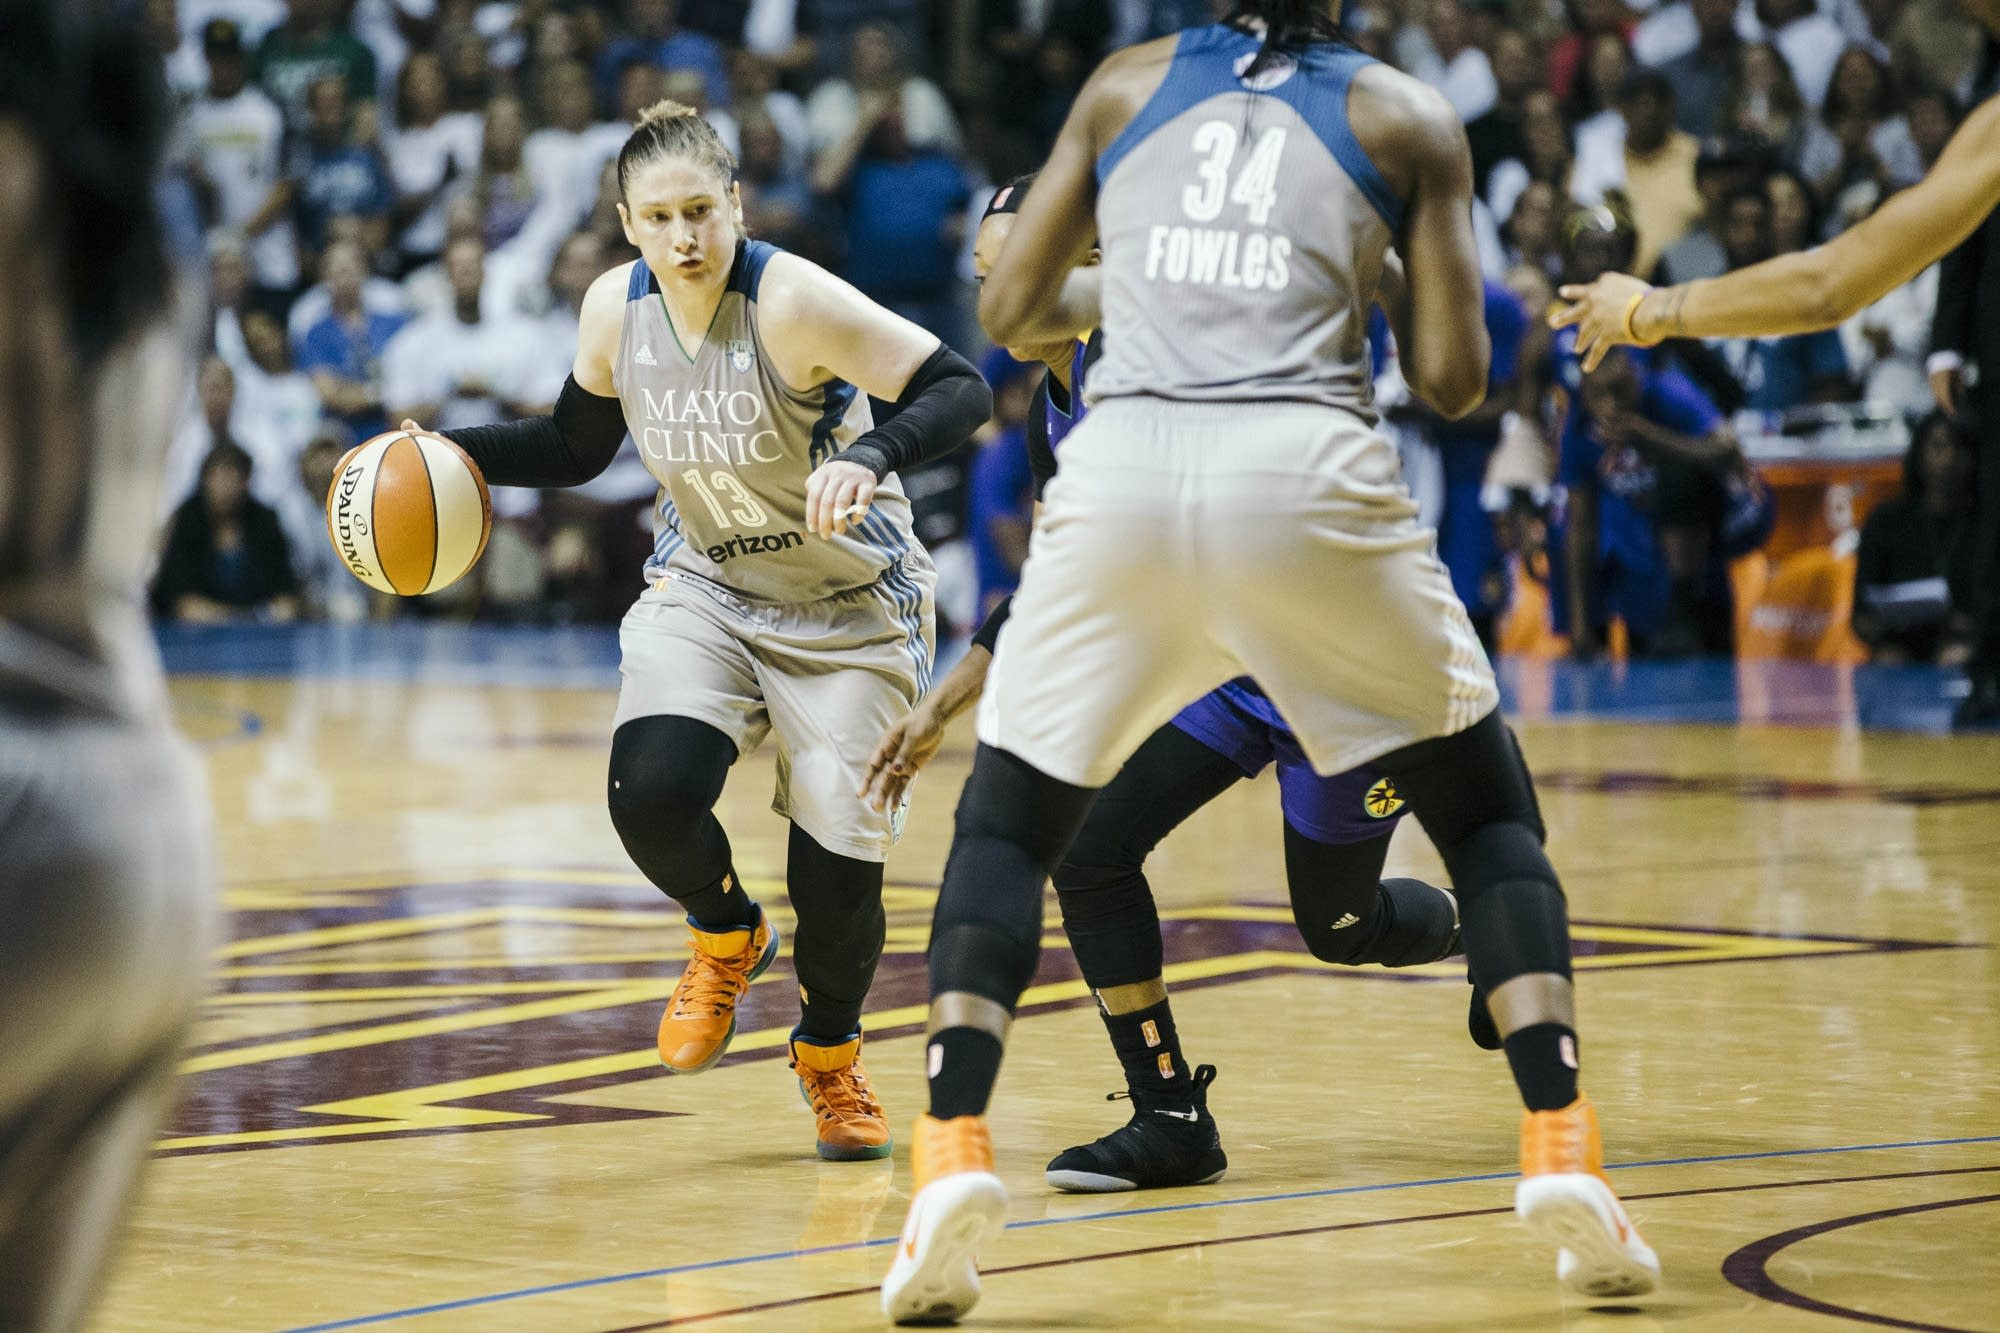 Lynx guard and Hutchinson native Lindsay Whalen dribbles the ball.